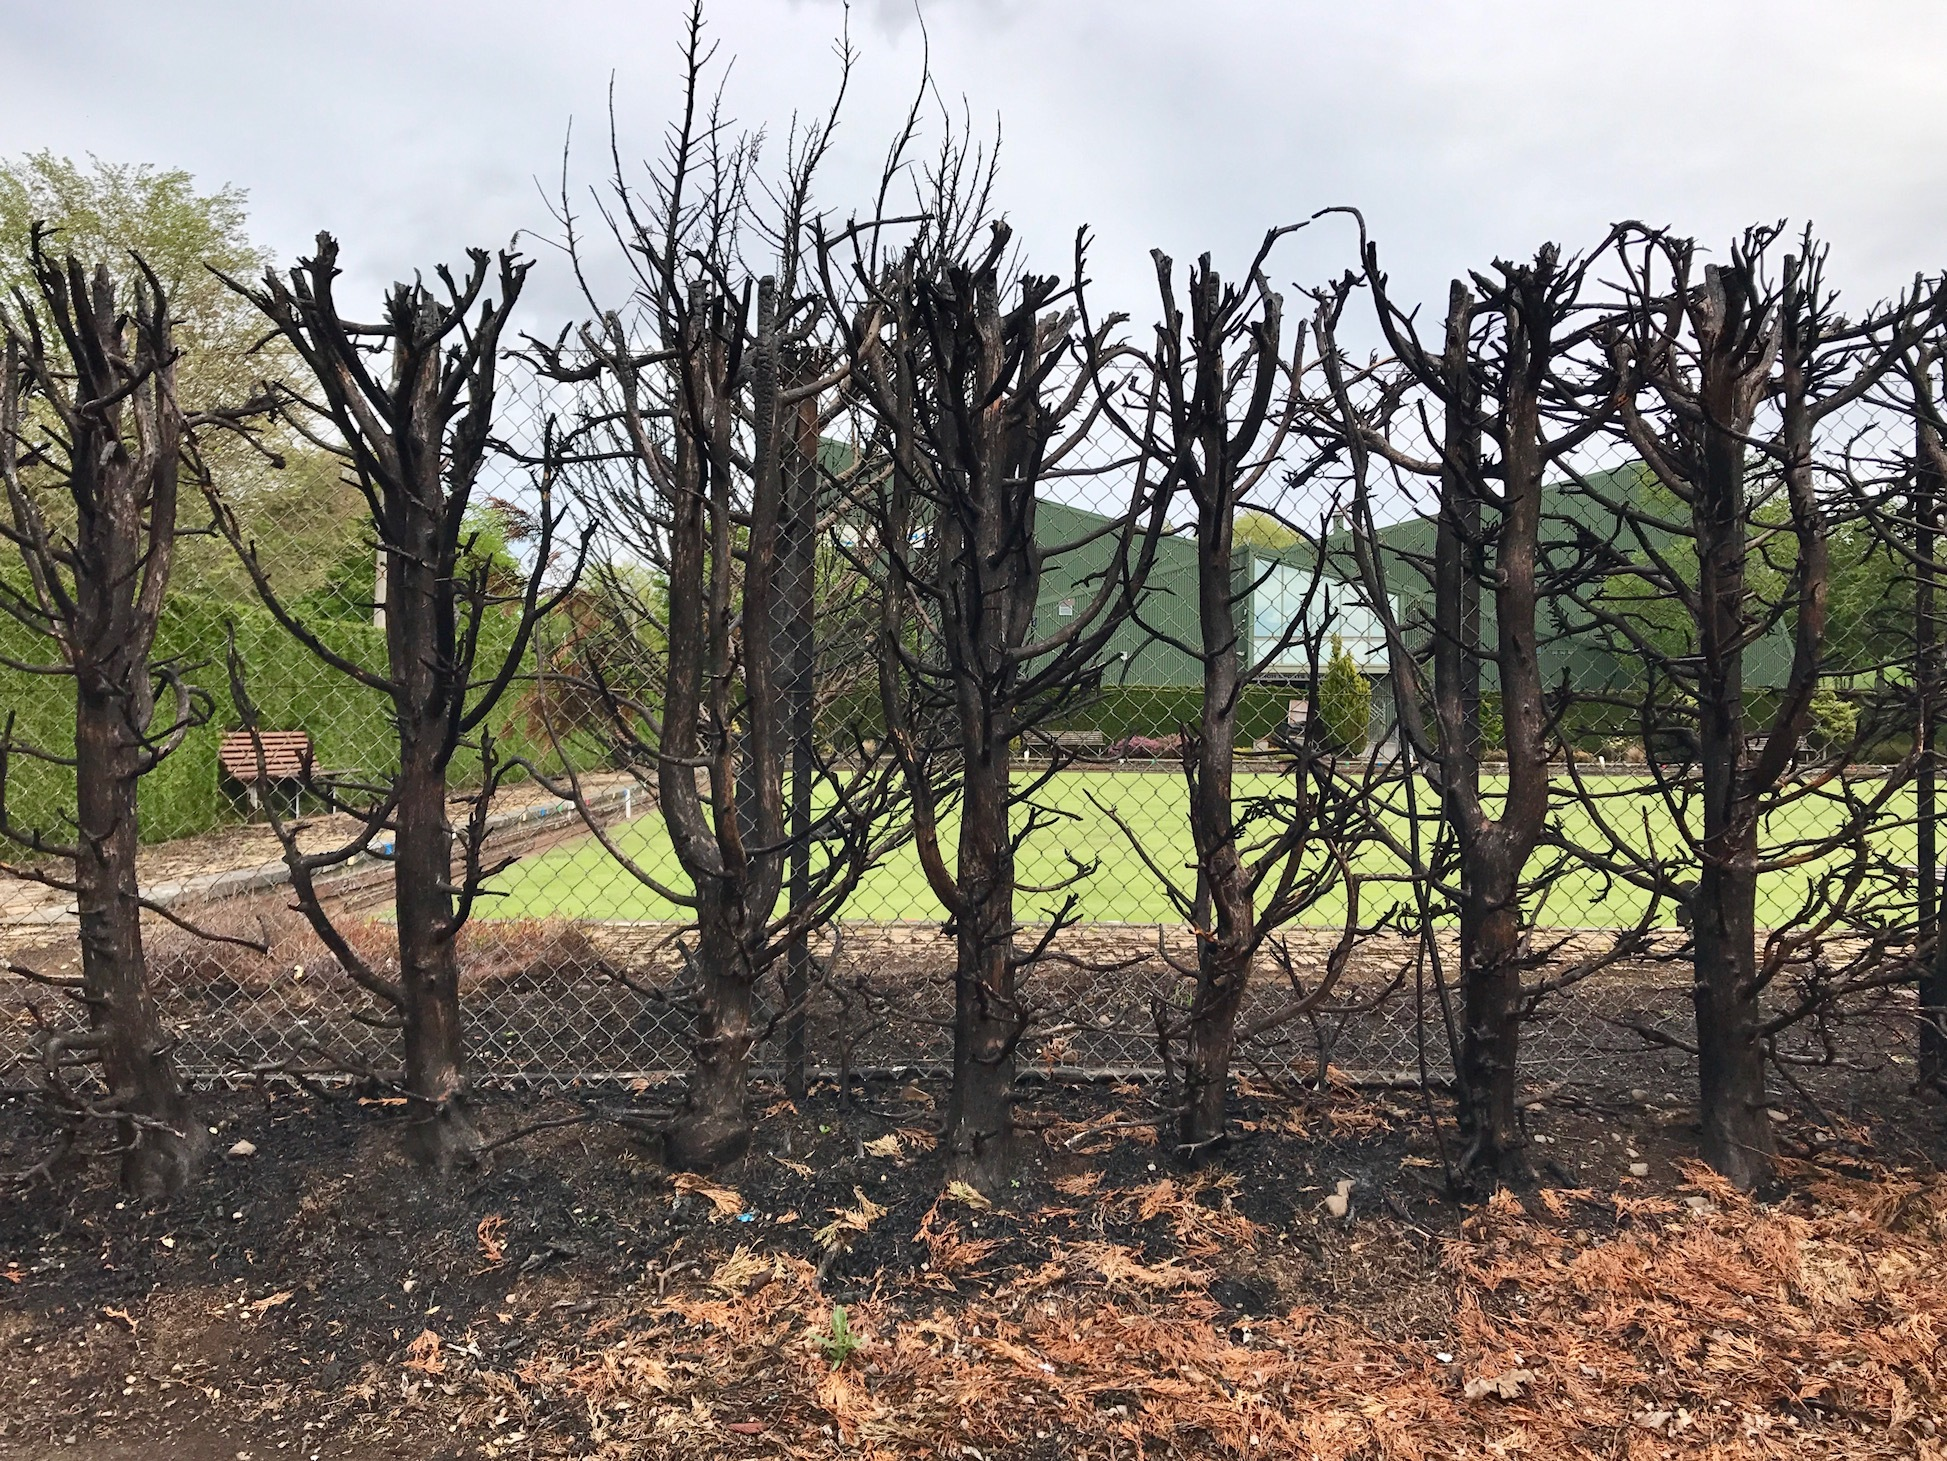 One of the hedges previously targeted by fireraisers.